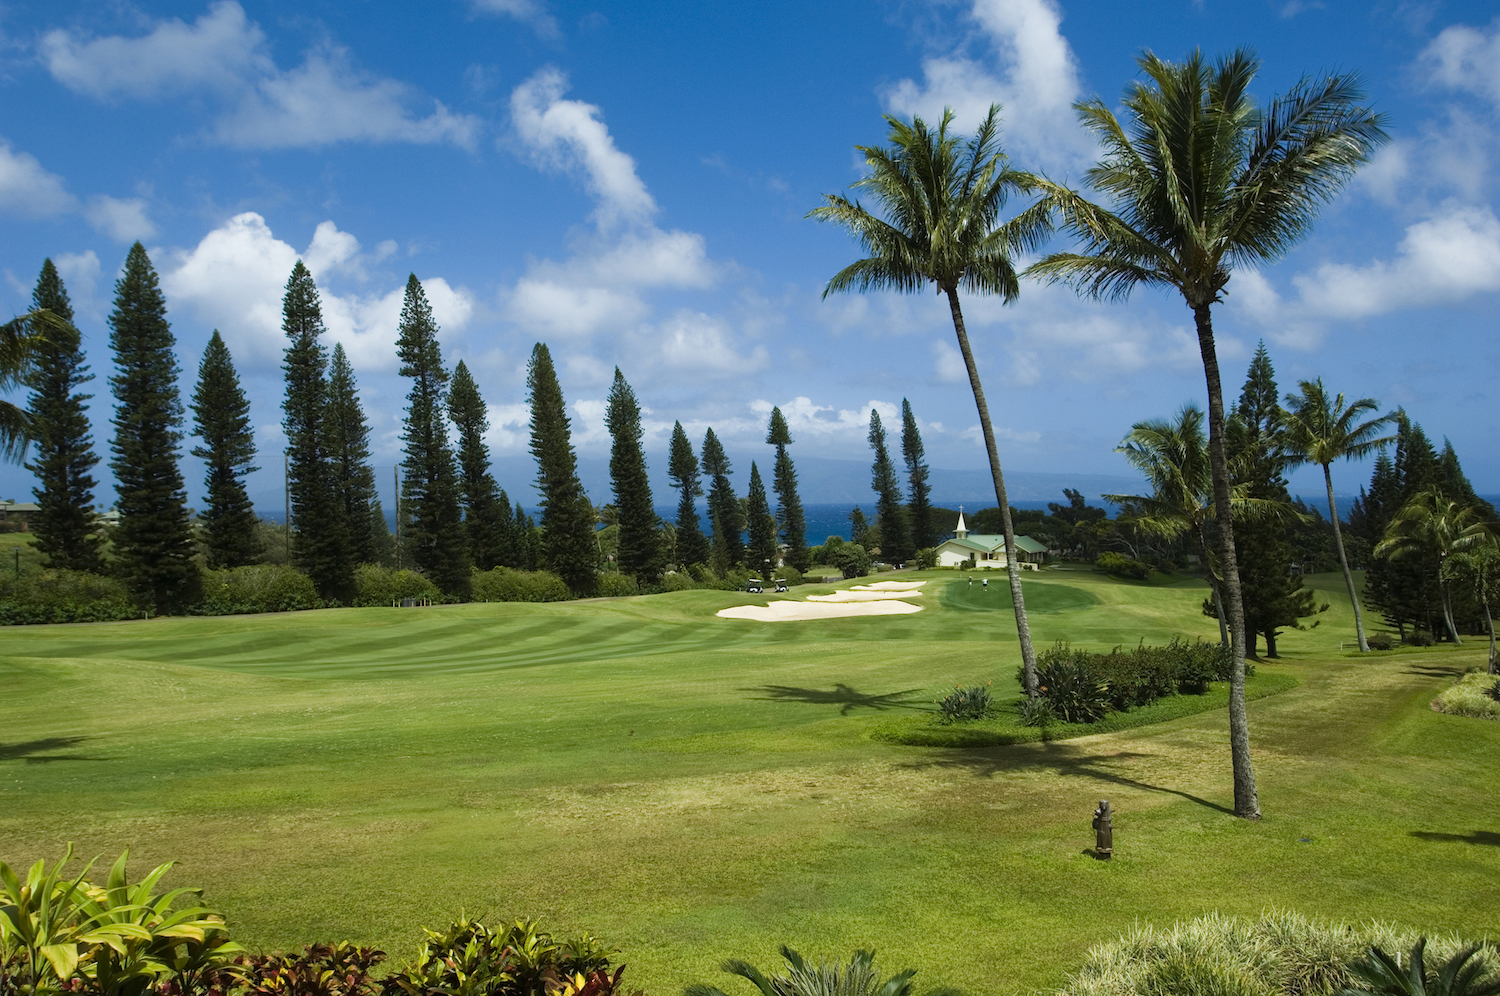 Broder palm trees on the golf course in Hawaii